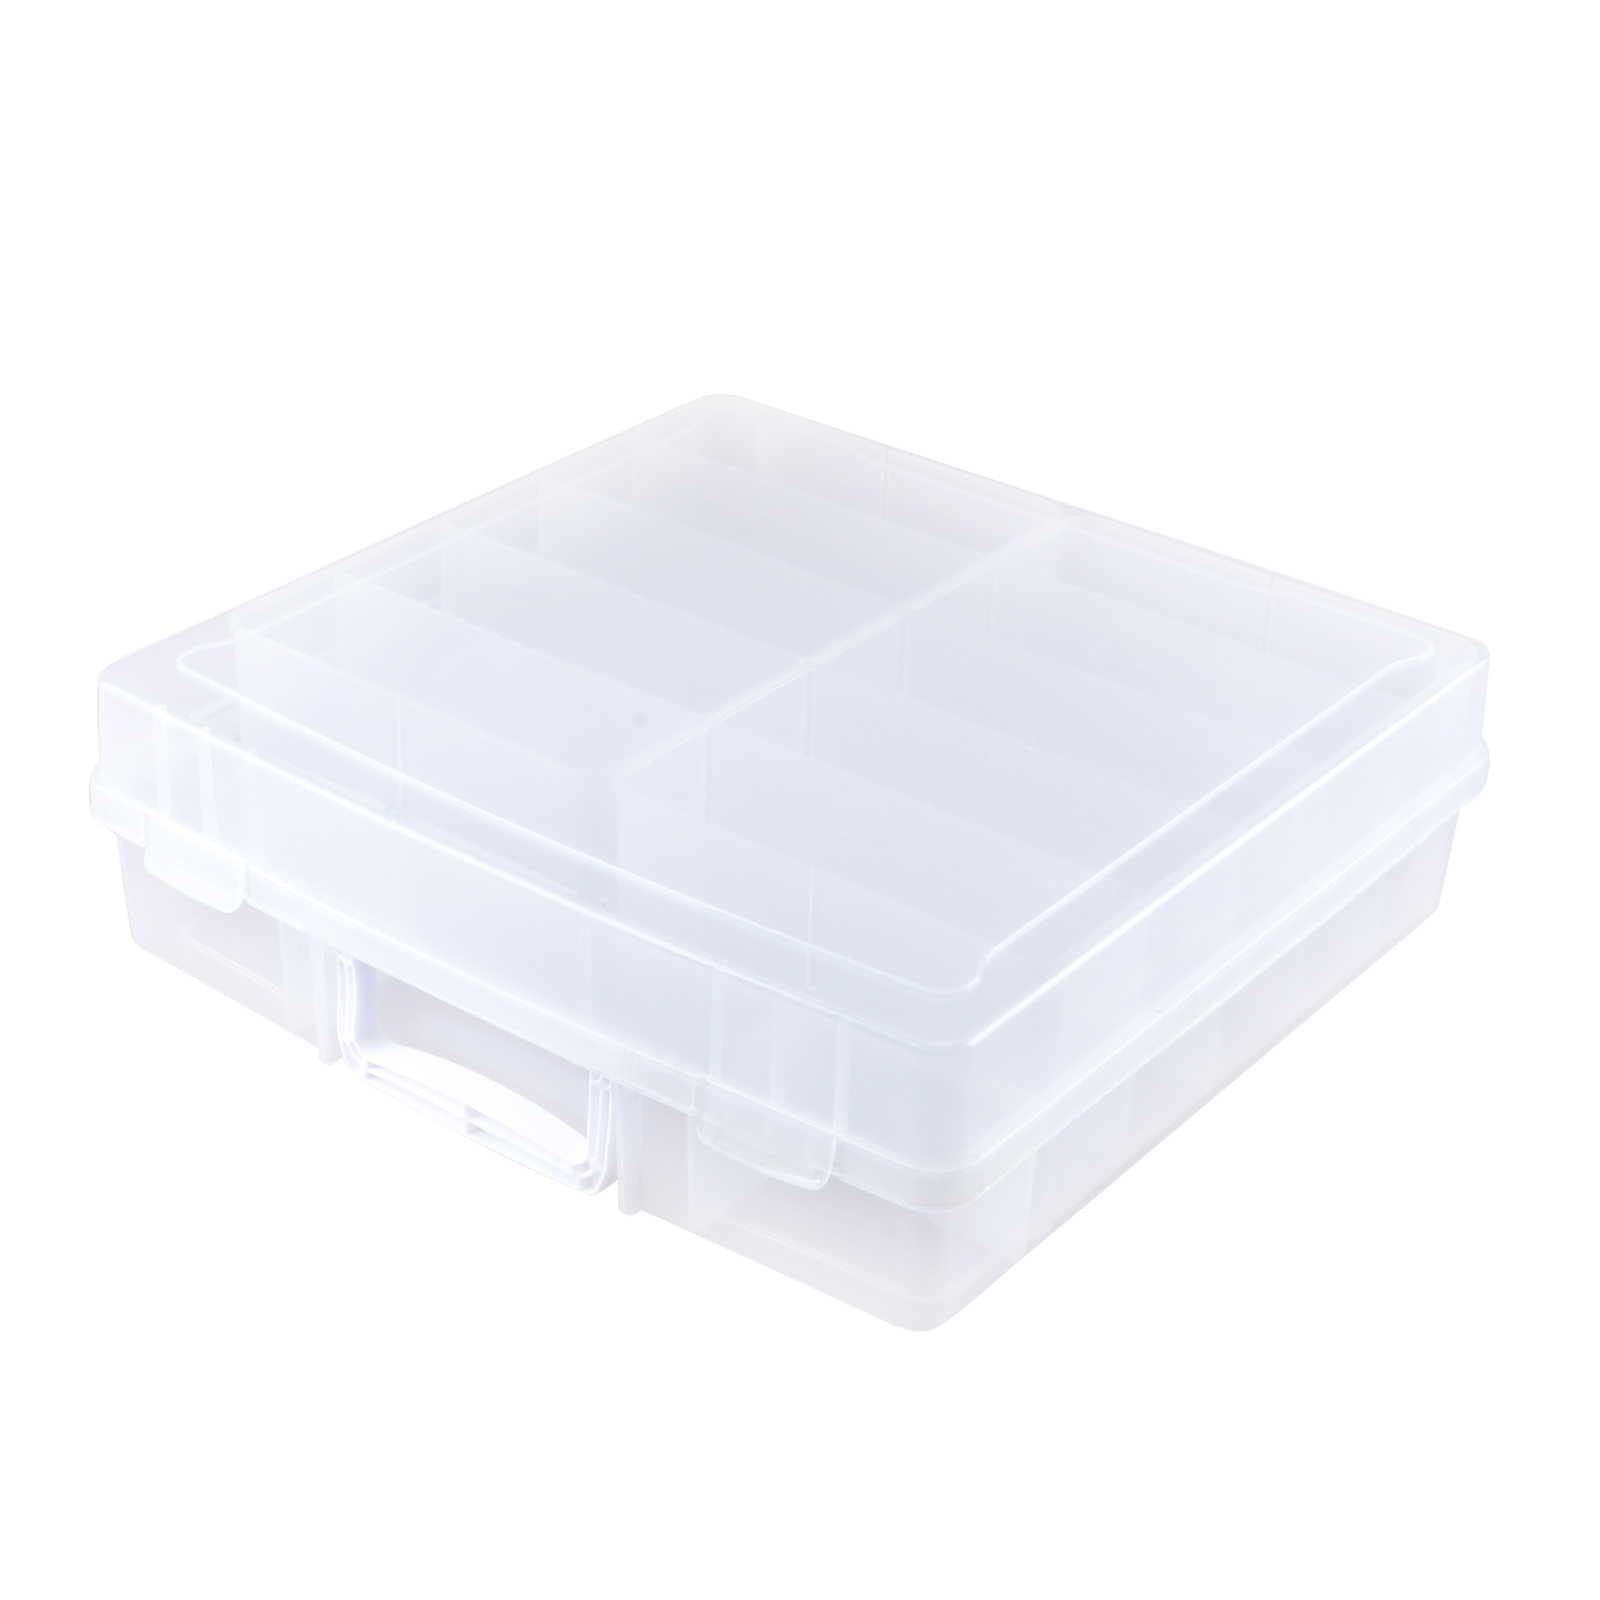 Washi Tape Storage Box By Recollections Empty ...  sc 1 st  Michaels Stores & Find the Washi Tape Storage Box By Recollections™ at Michaels